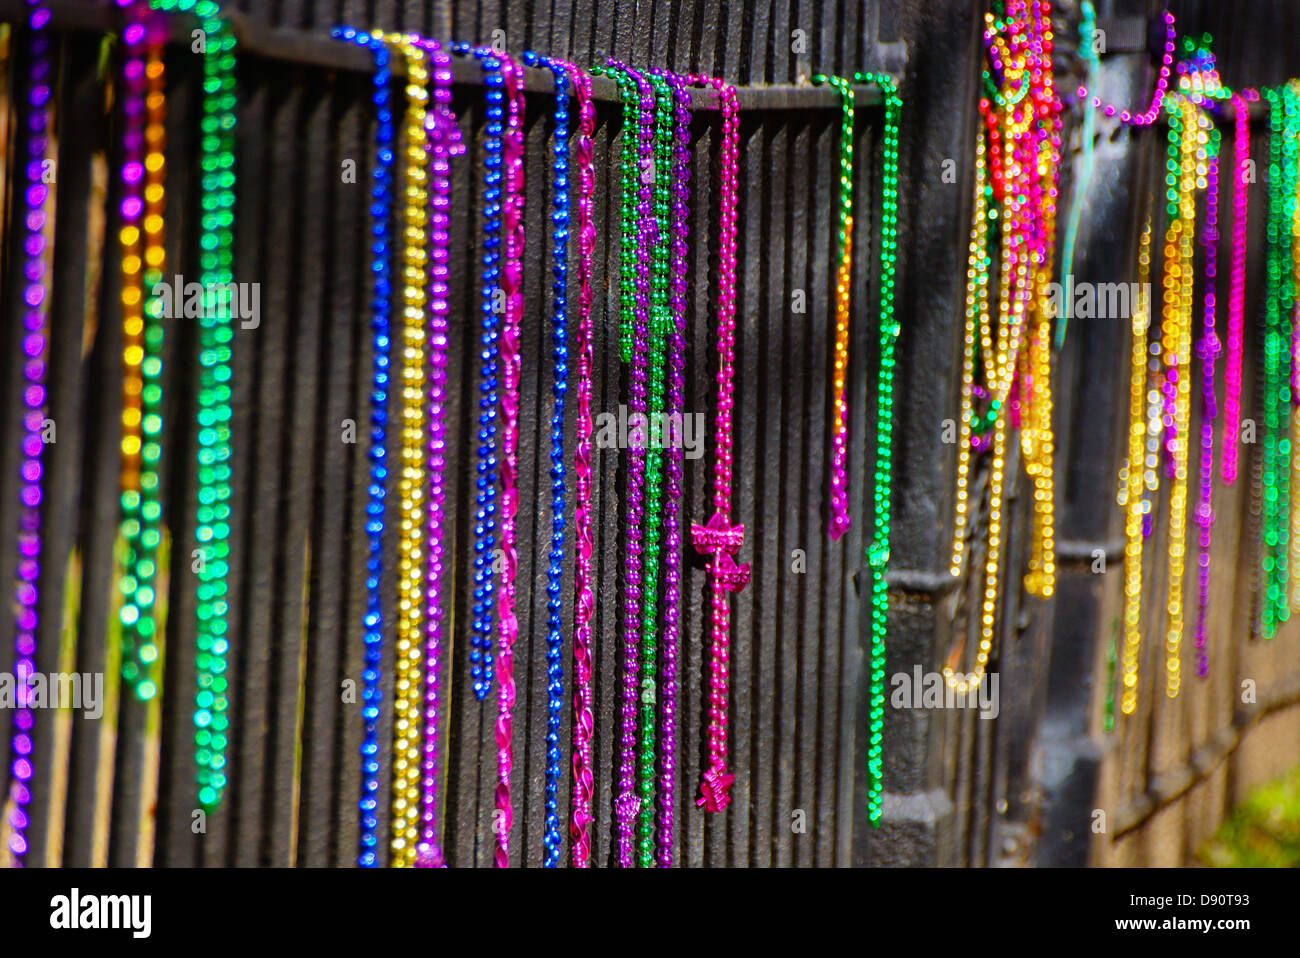 Beads on a fence after Mardi Gras in New Oleans, LA Stock Photo